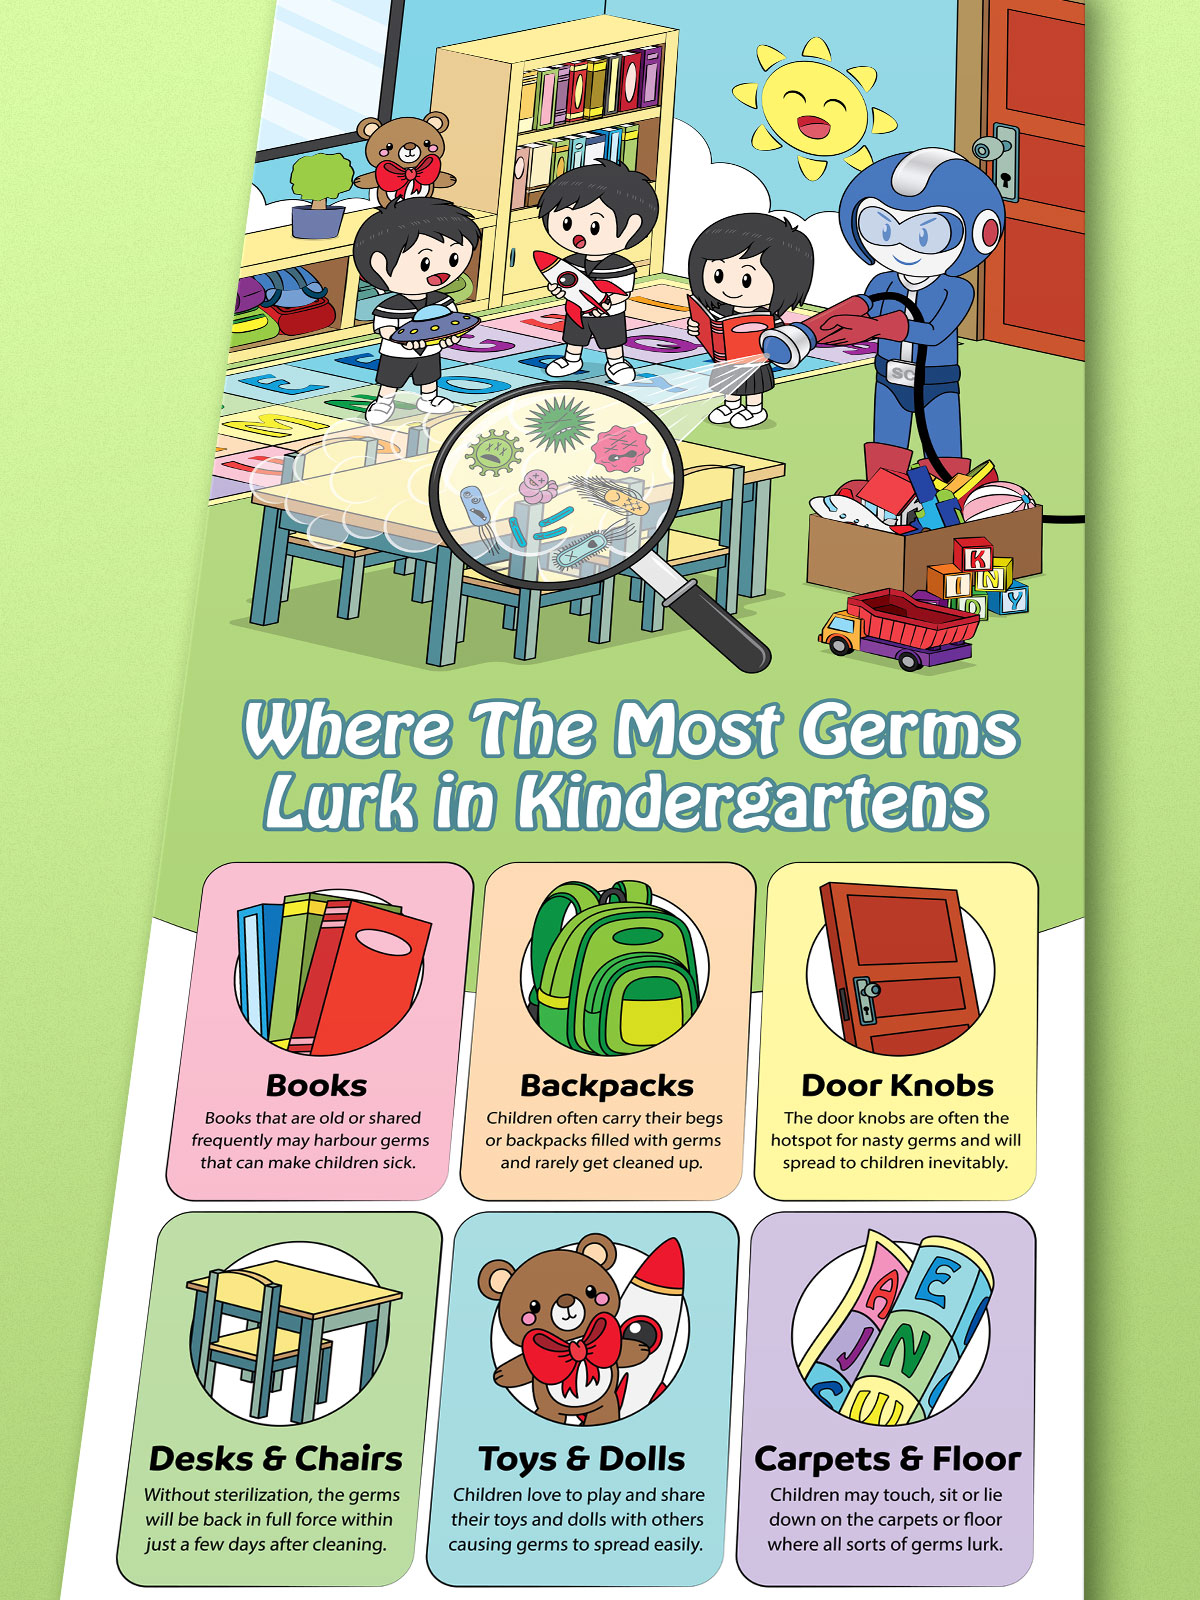 Where The Most Germs Lurk in Kindergartens Roll-Up Banner Design 03